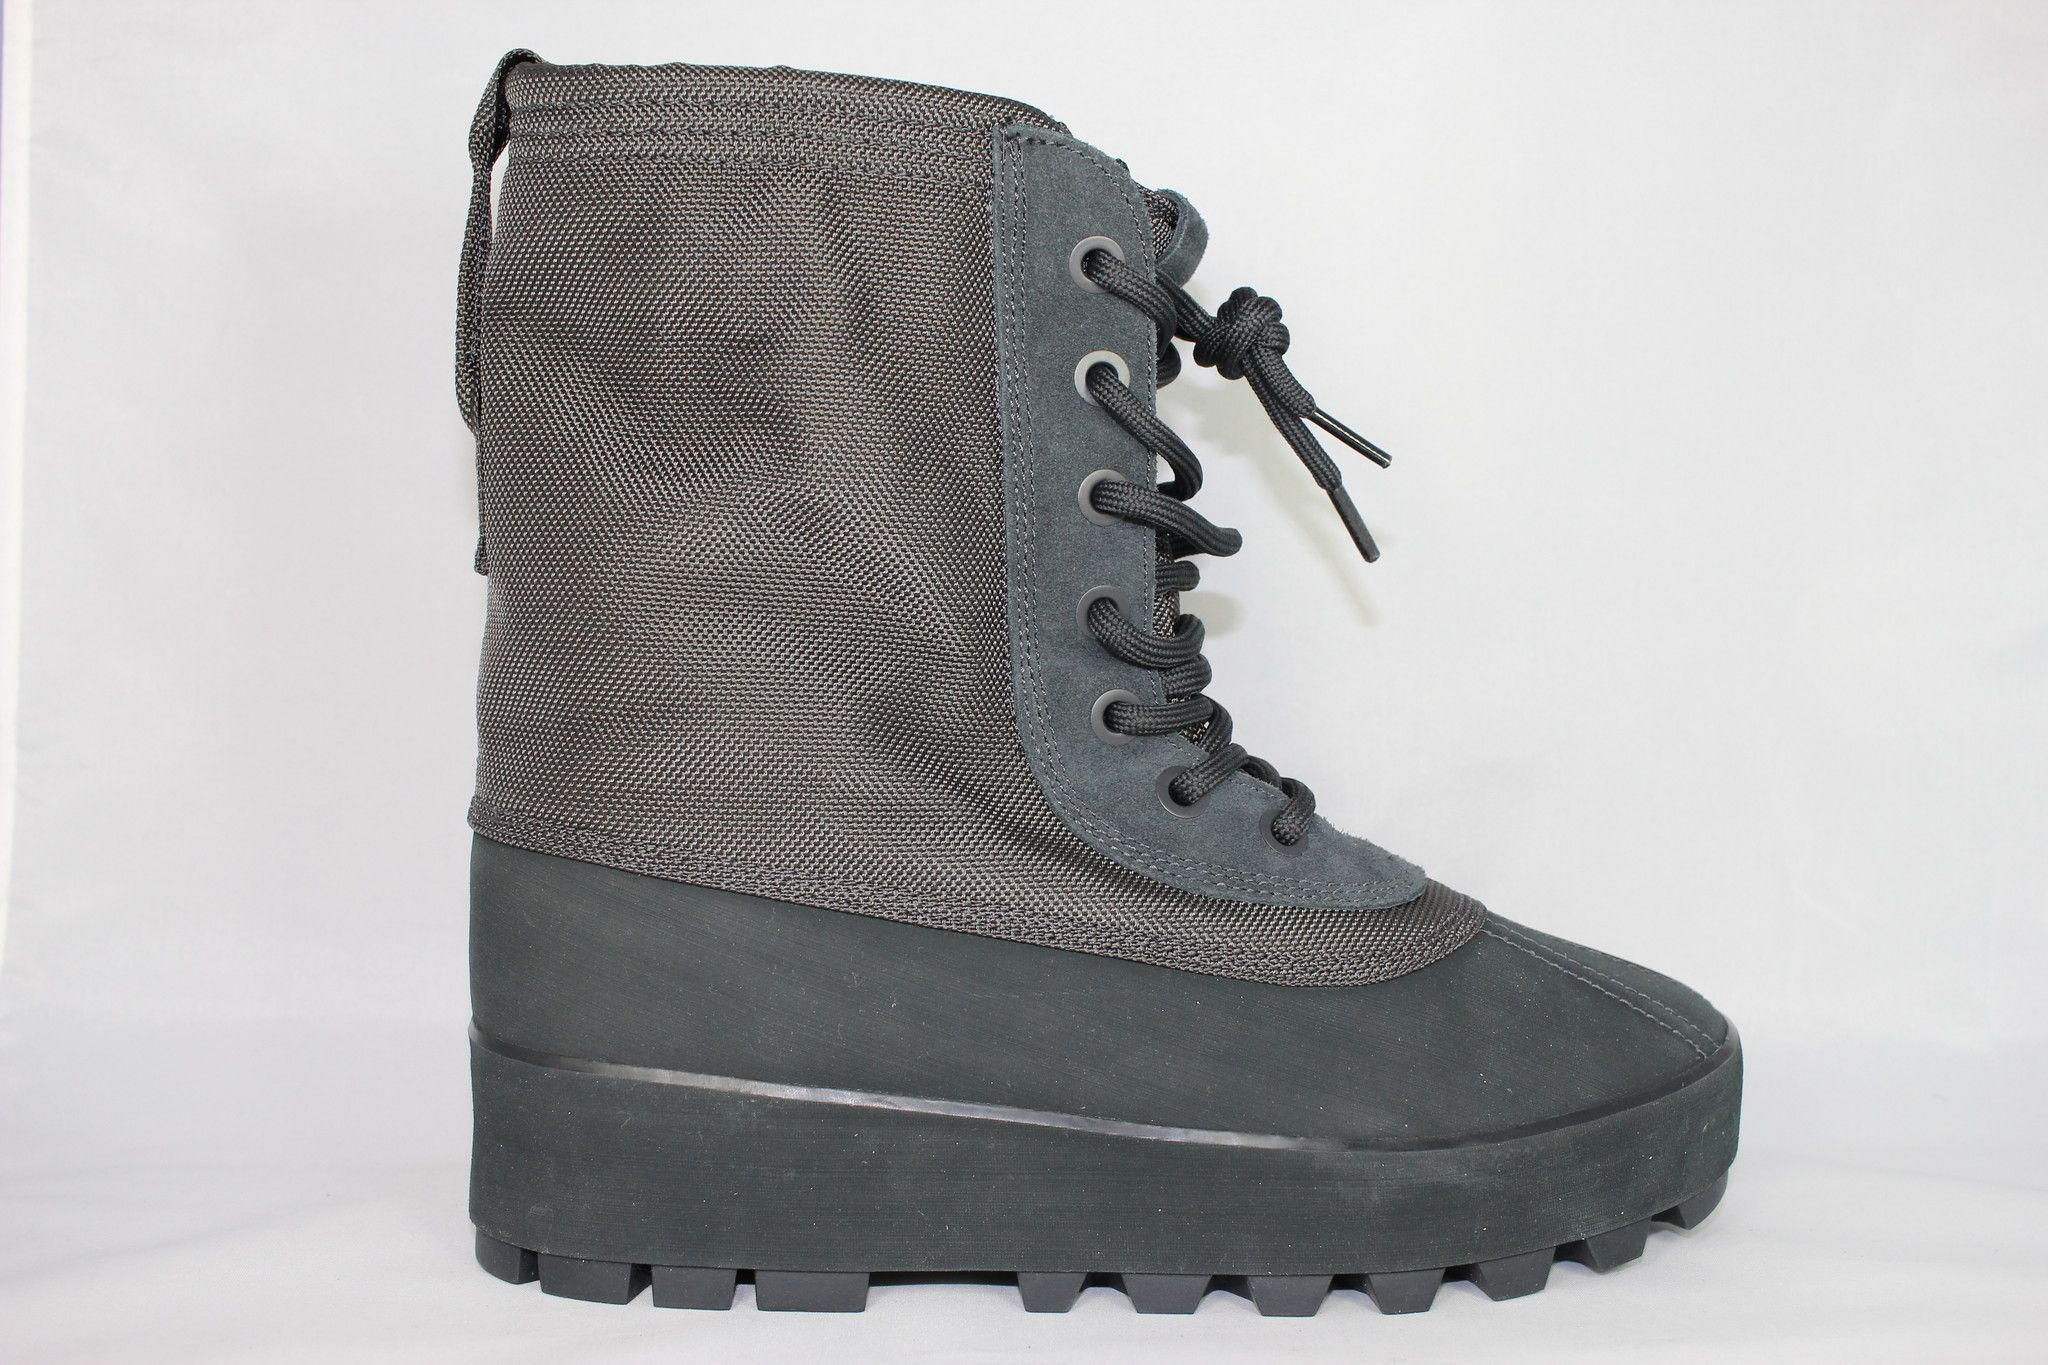 where can i buy adidas yeezy boot 950 pirate black b8b2e 118e1 5b3f50f51